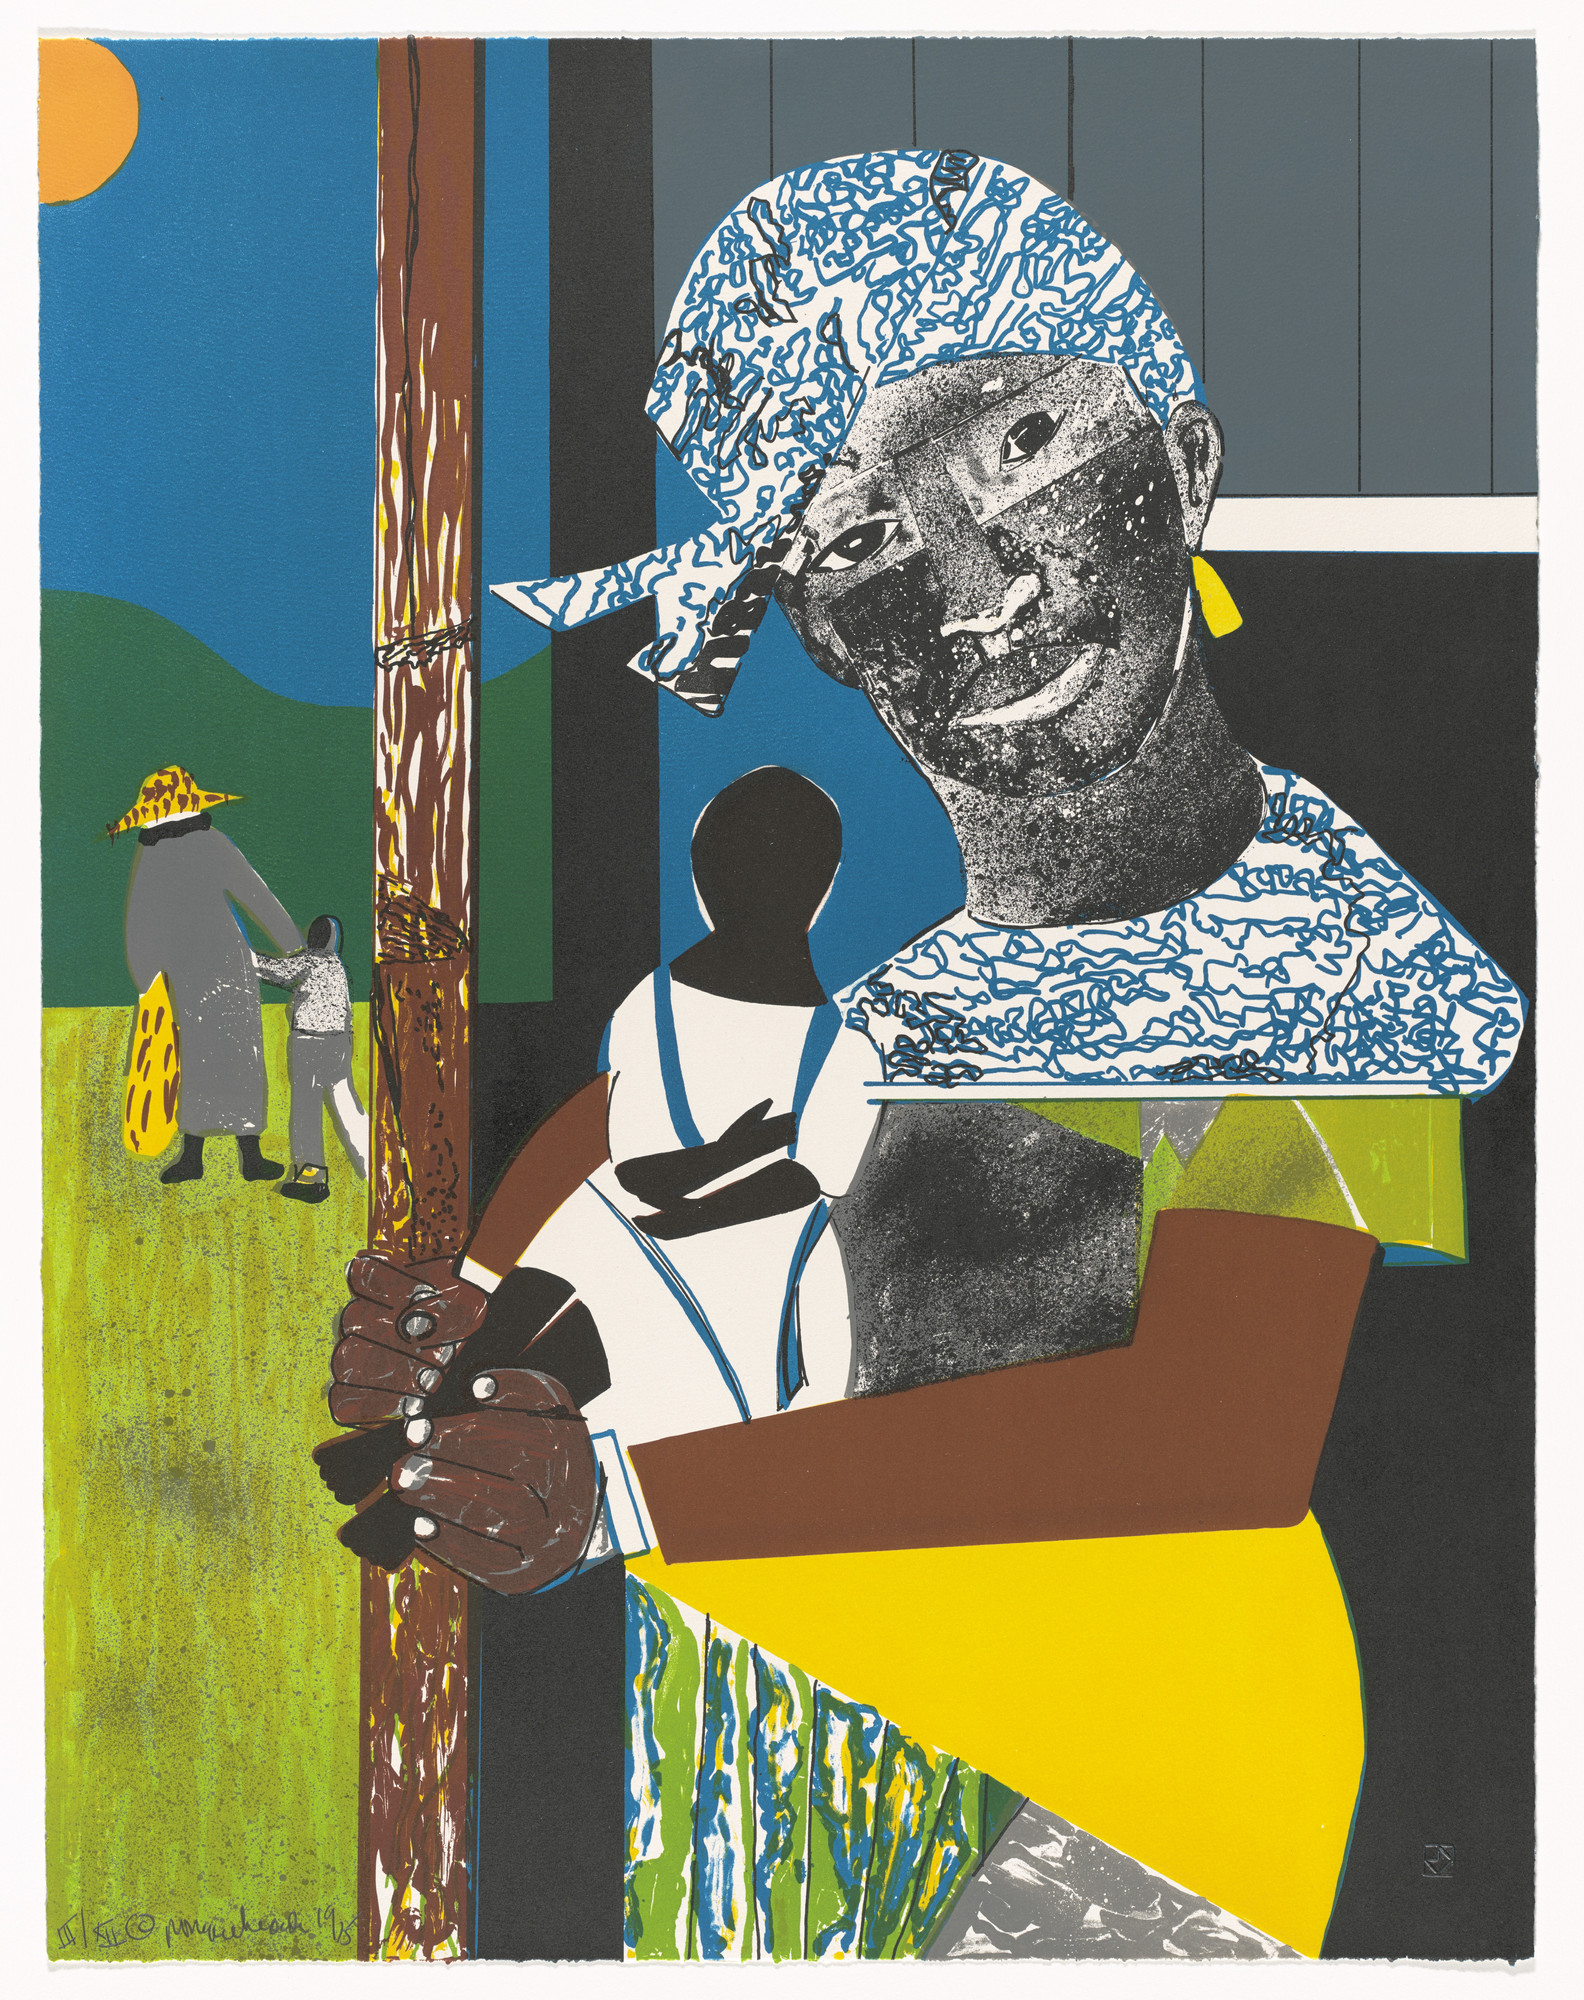 Romare Bearden. Come Sunday from 1776 USA 1976 Bicentennial Prints. 1975, published 1976